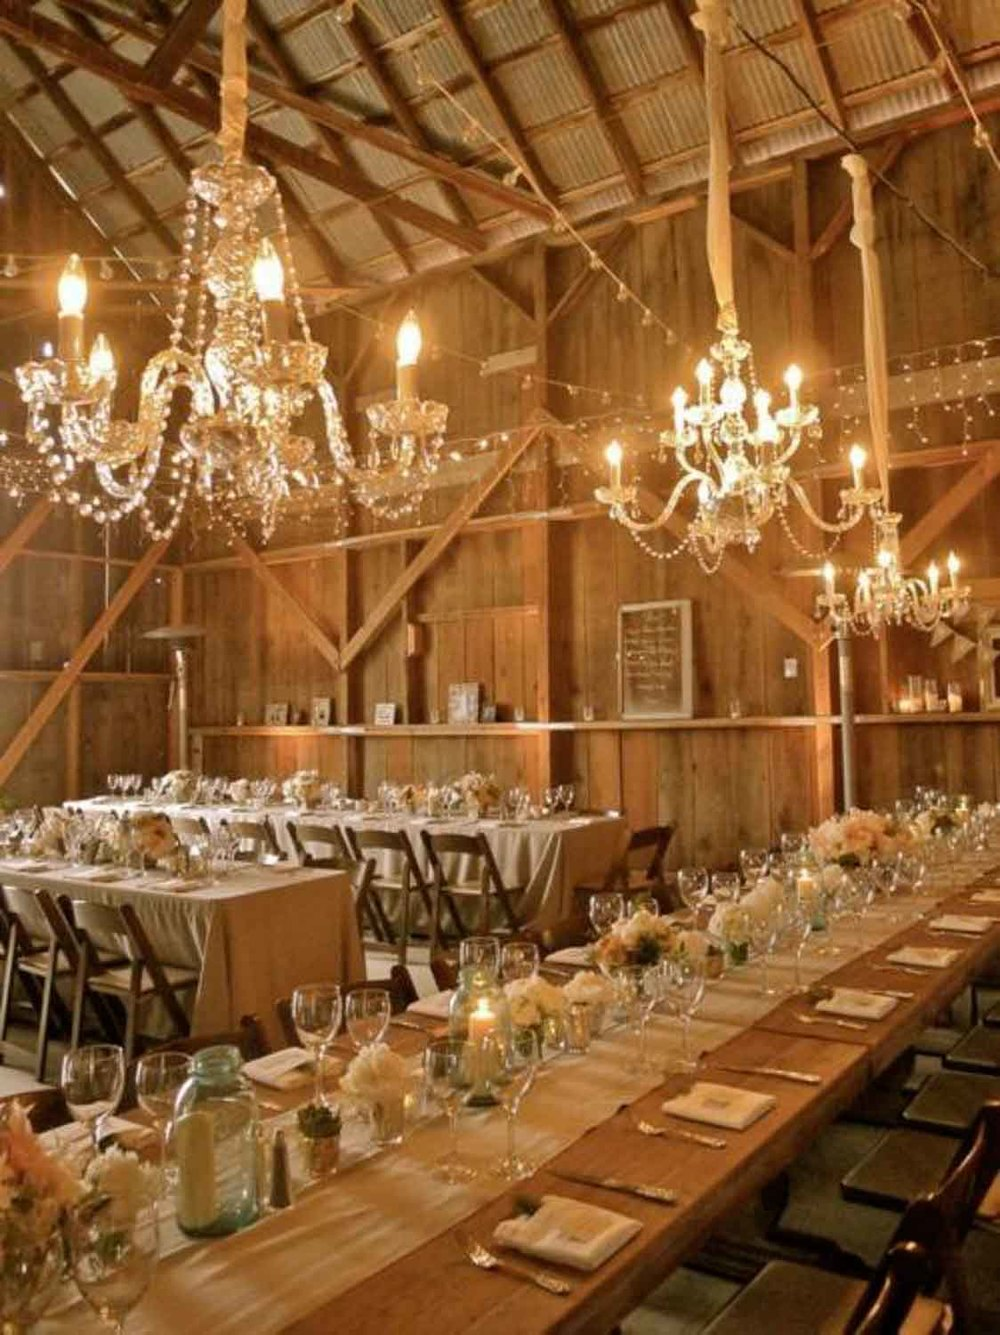 Fancy Barn Reception.JPG